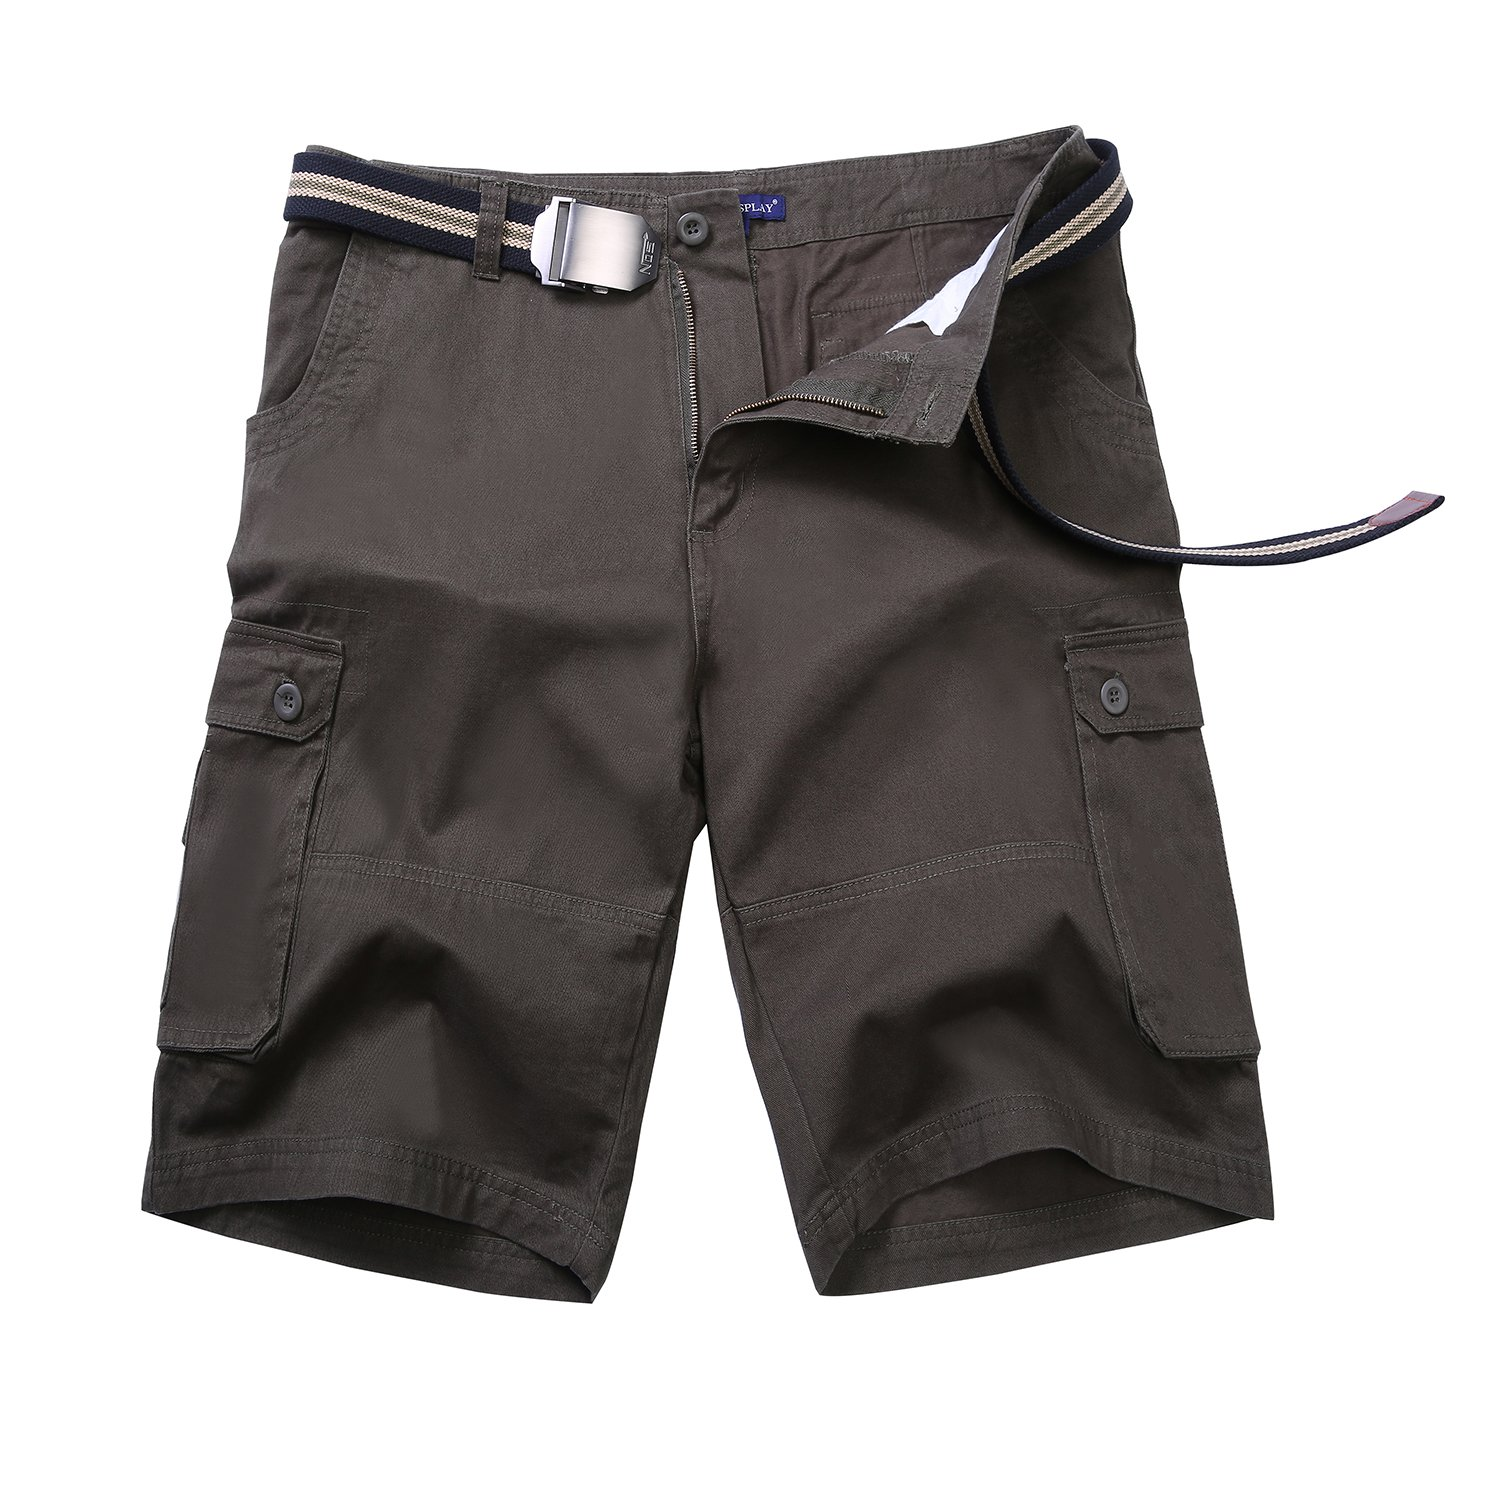 NEWCOSPLAY Men's Cotton Cargo Army Green Shorts (42, Army Green)